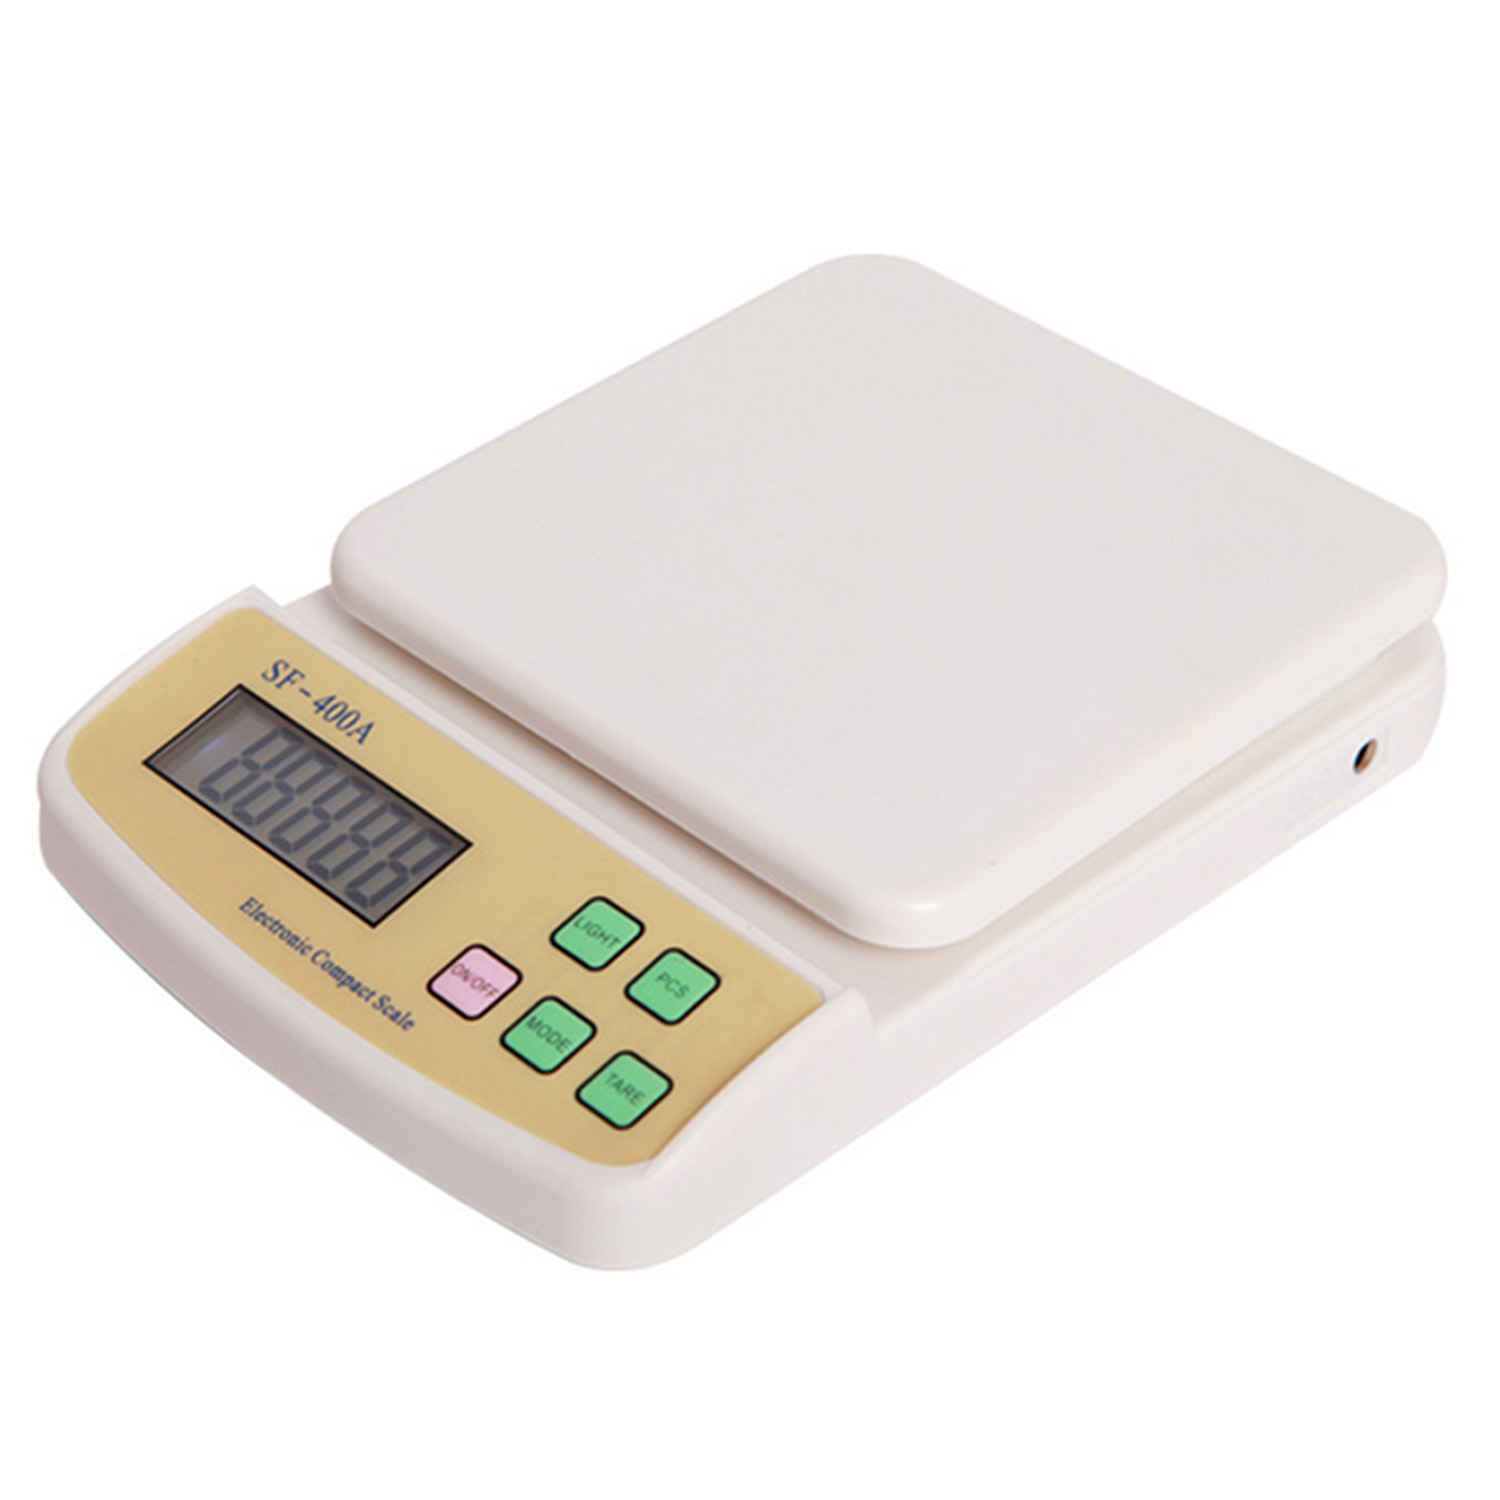 Small Kitchen Weighing Scales Popular Food Weighing Scale Buy Cheap Food Weighing Scale Lots